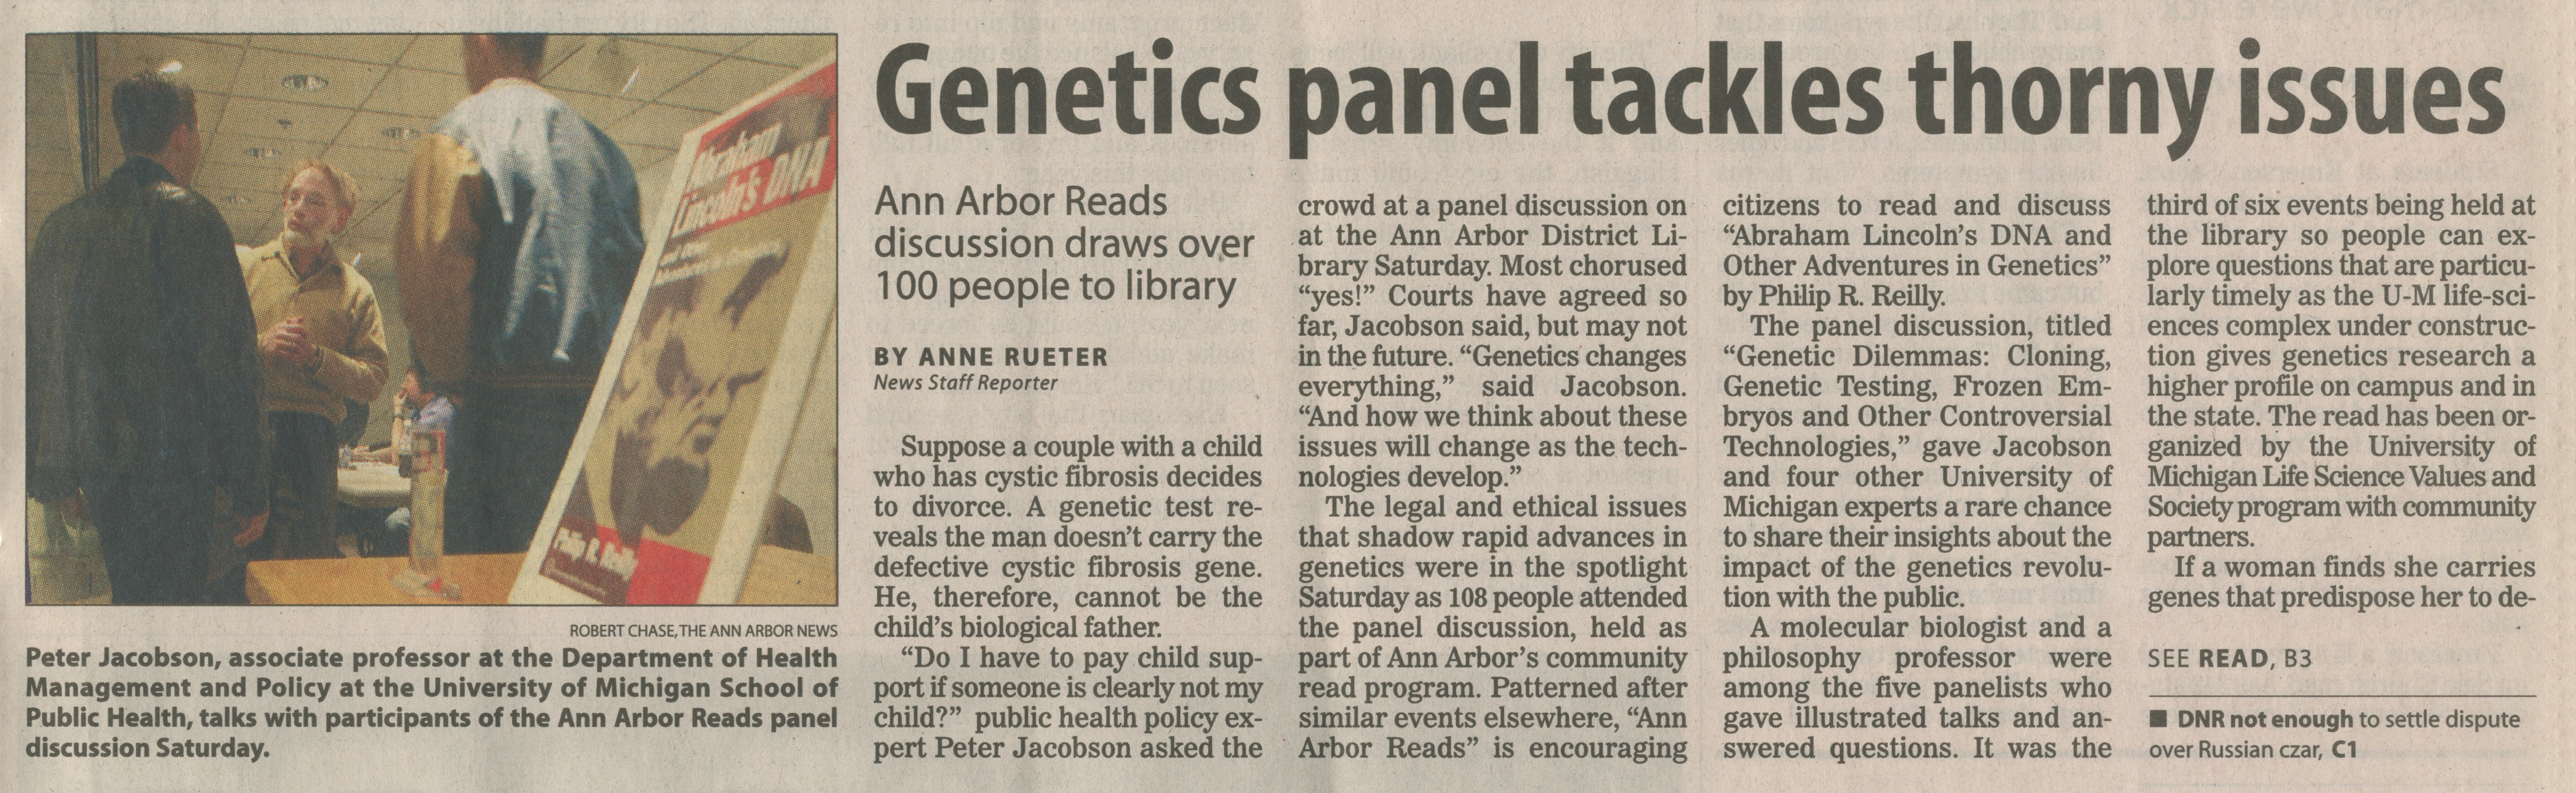 Genetics Panel Tackles Thorny Issues image